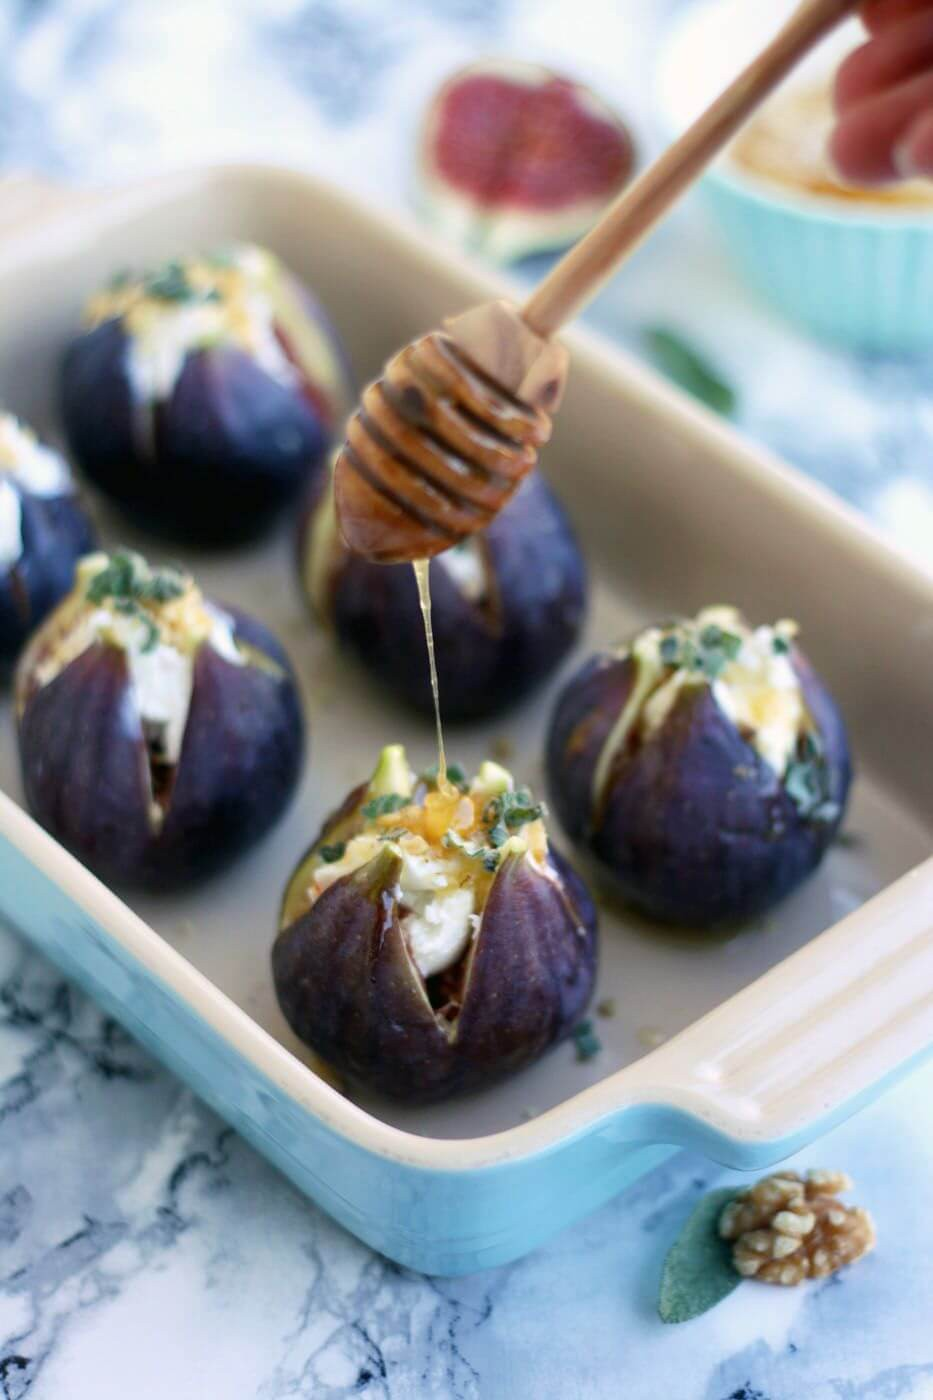 Baked-figs-goat-cheese-1.jpg